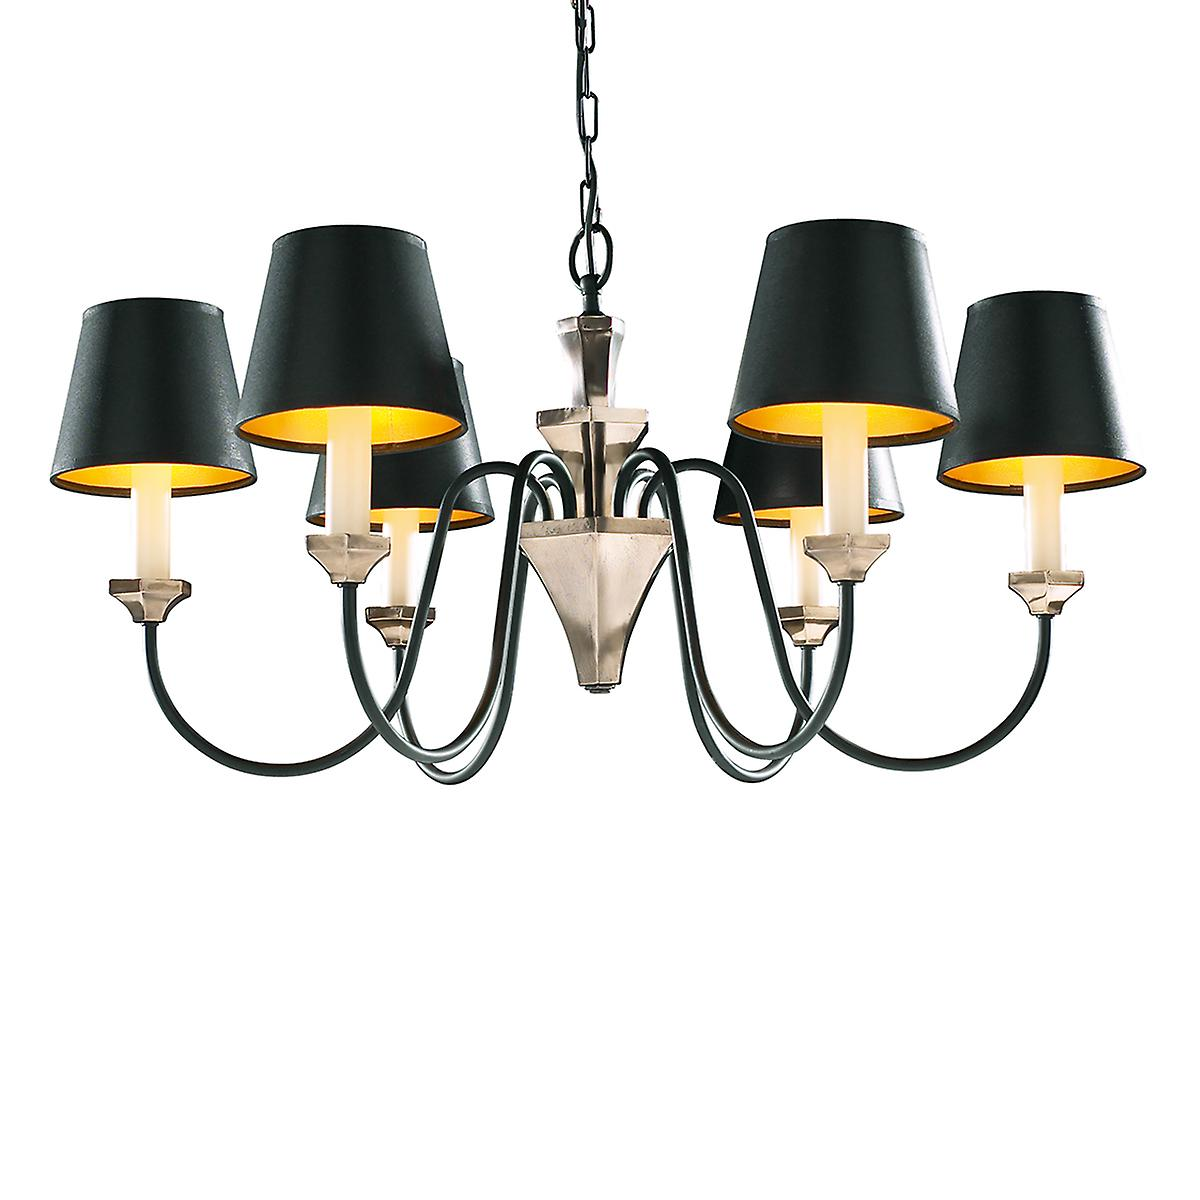 David Hunt OTH0663 Othello 6 Light Pendant In A Bronze Finish - Shades Not Included